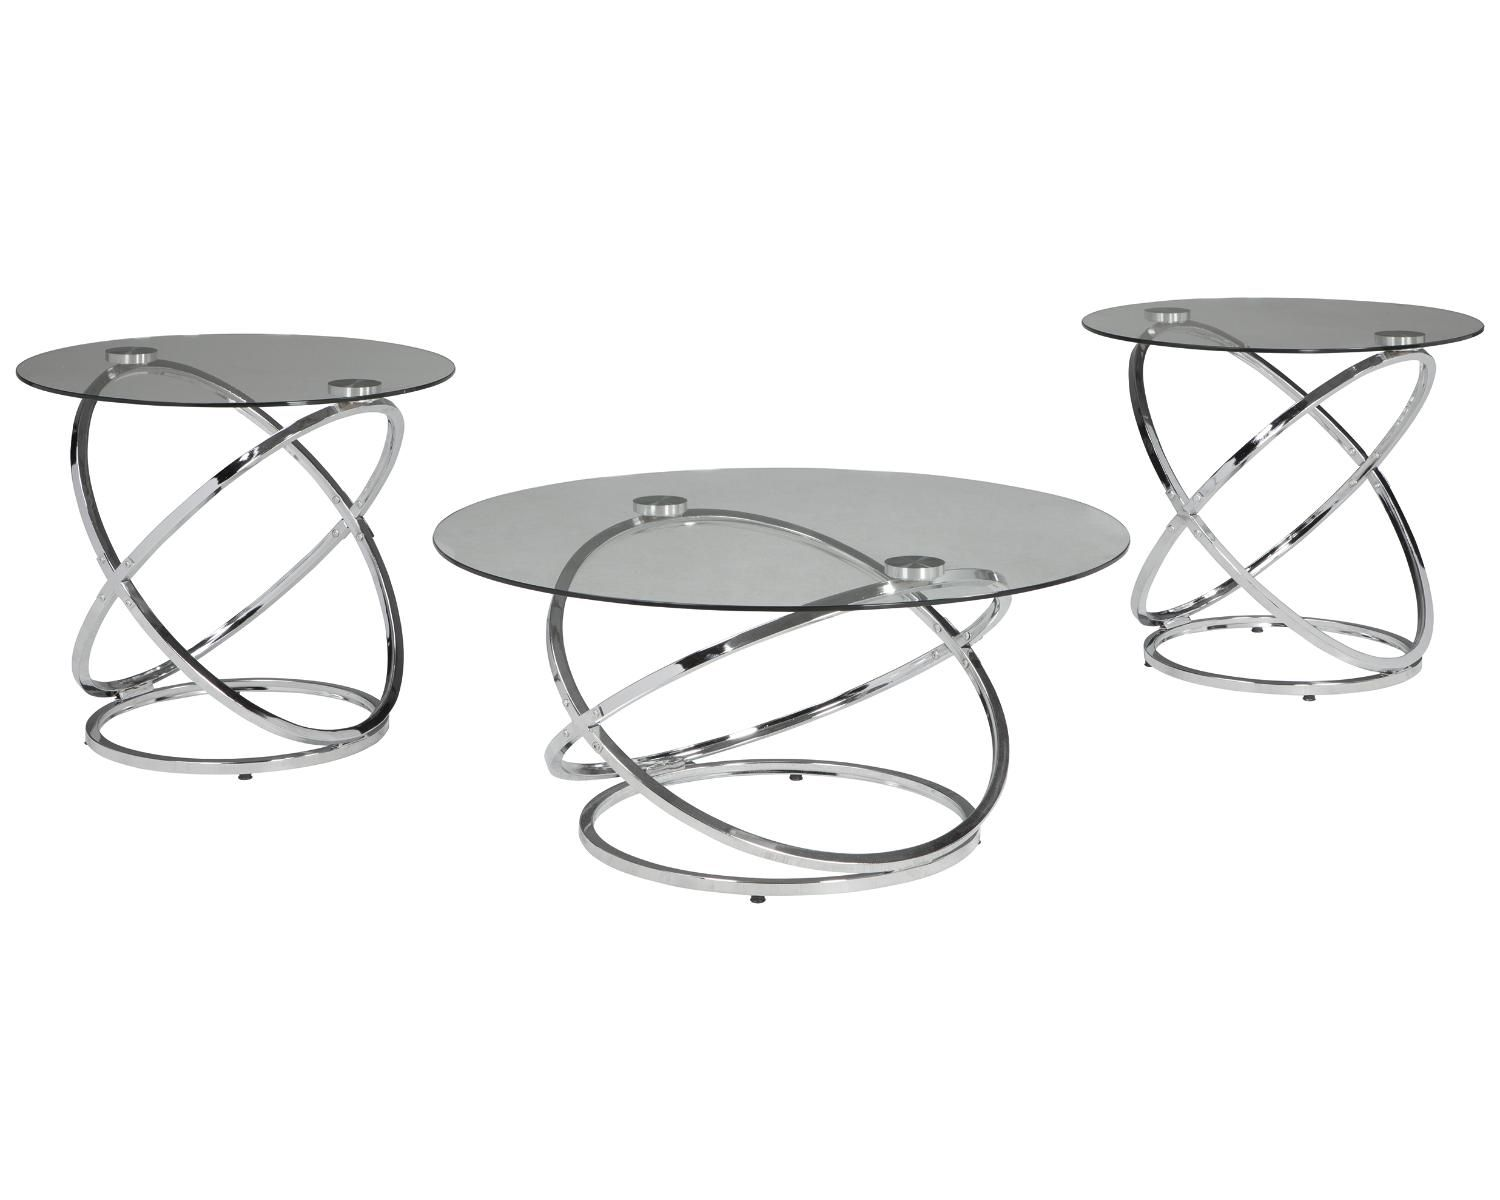 Signature Design By Ashley Hollynyx Living Room Table Set Walmart Com In 2021 Coffee Table Setting 3 Piece Coffee Table Set Tempered Glass Table Top [ 1200 x 1500 Pixel ]